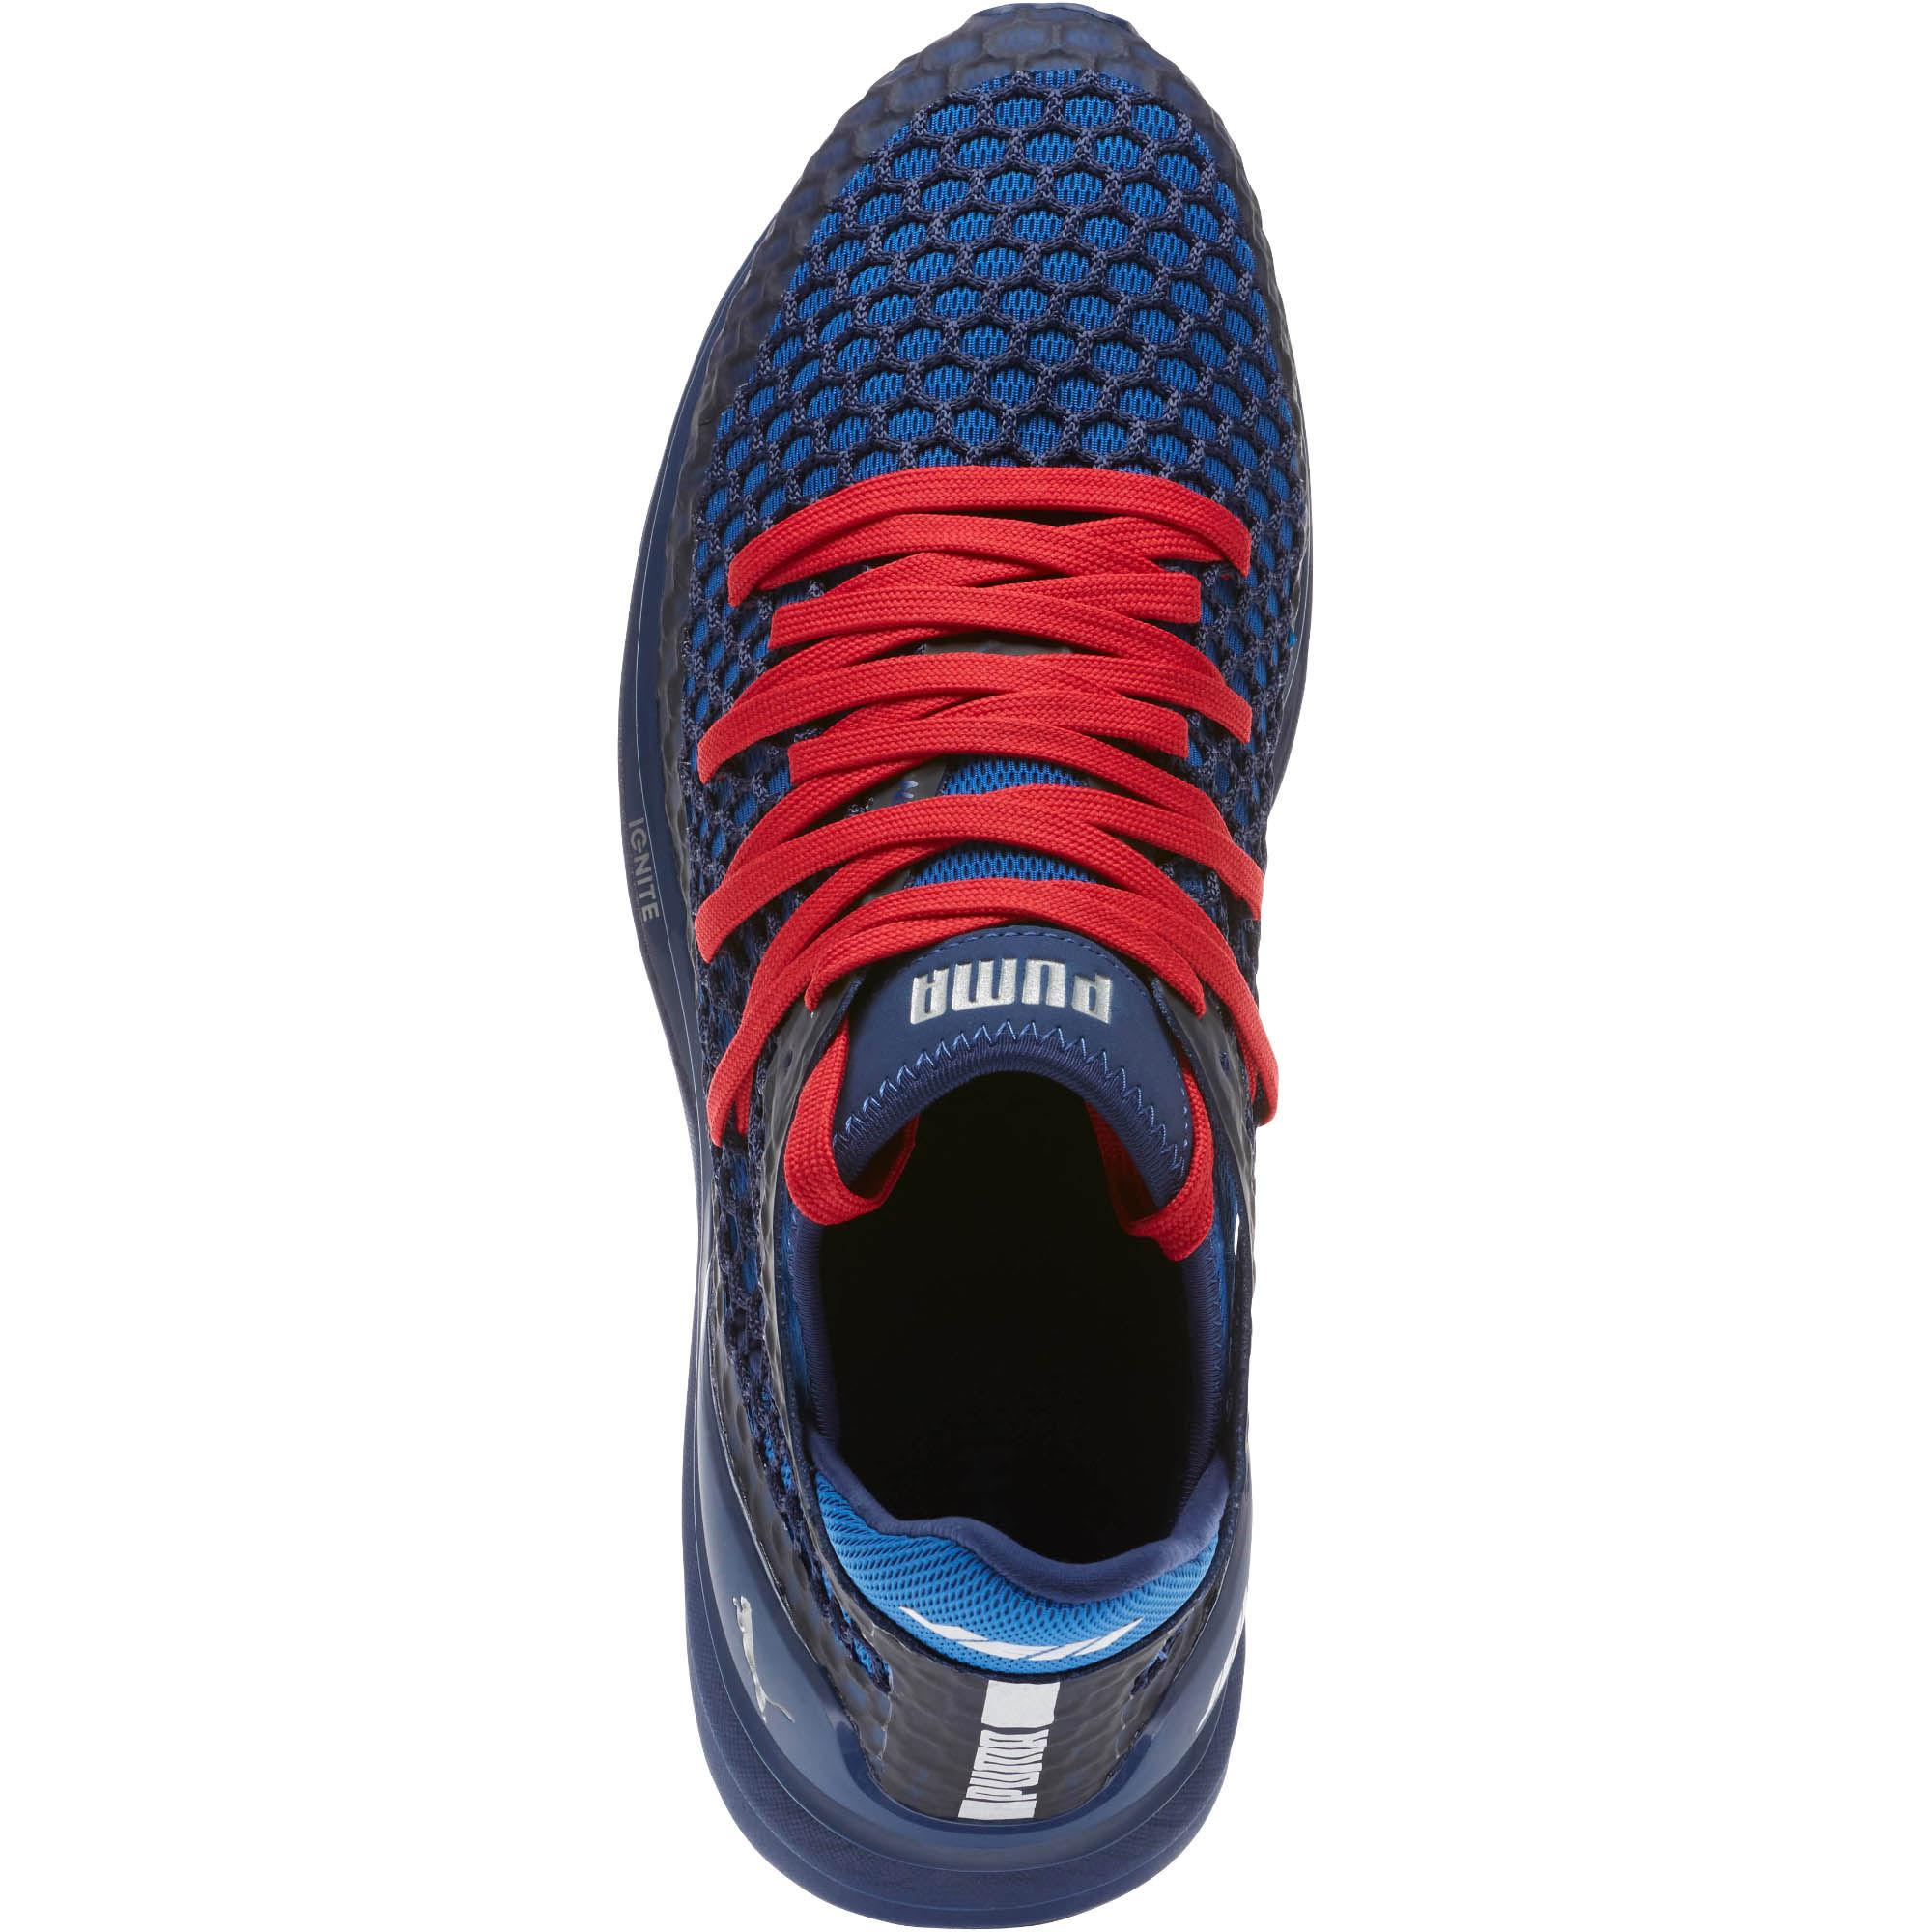 f8cece230dabe3 Lyst - PUMA Ignite Limitless Netfit Je11 Men s Training Shoes in ...